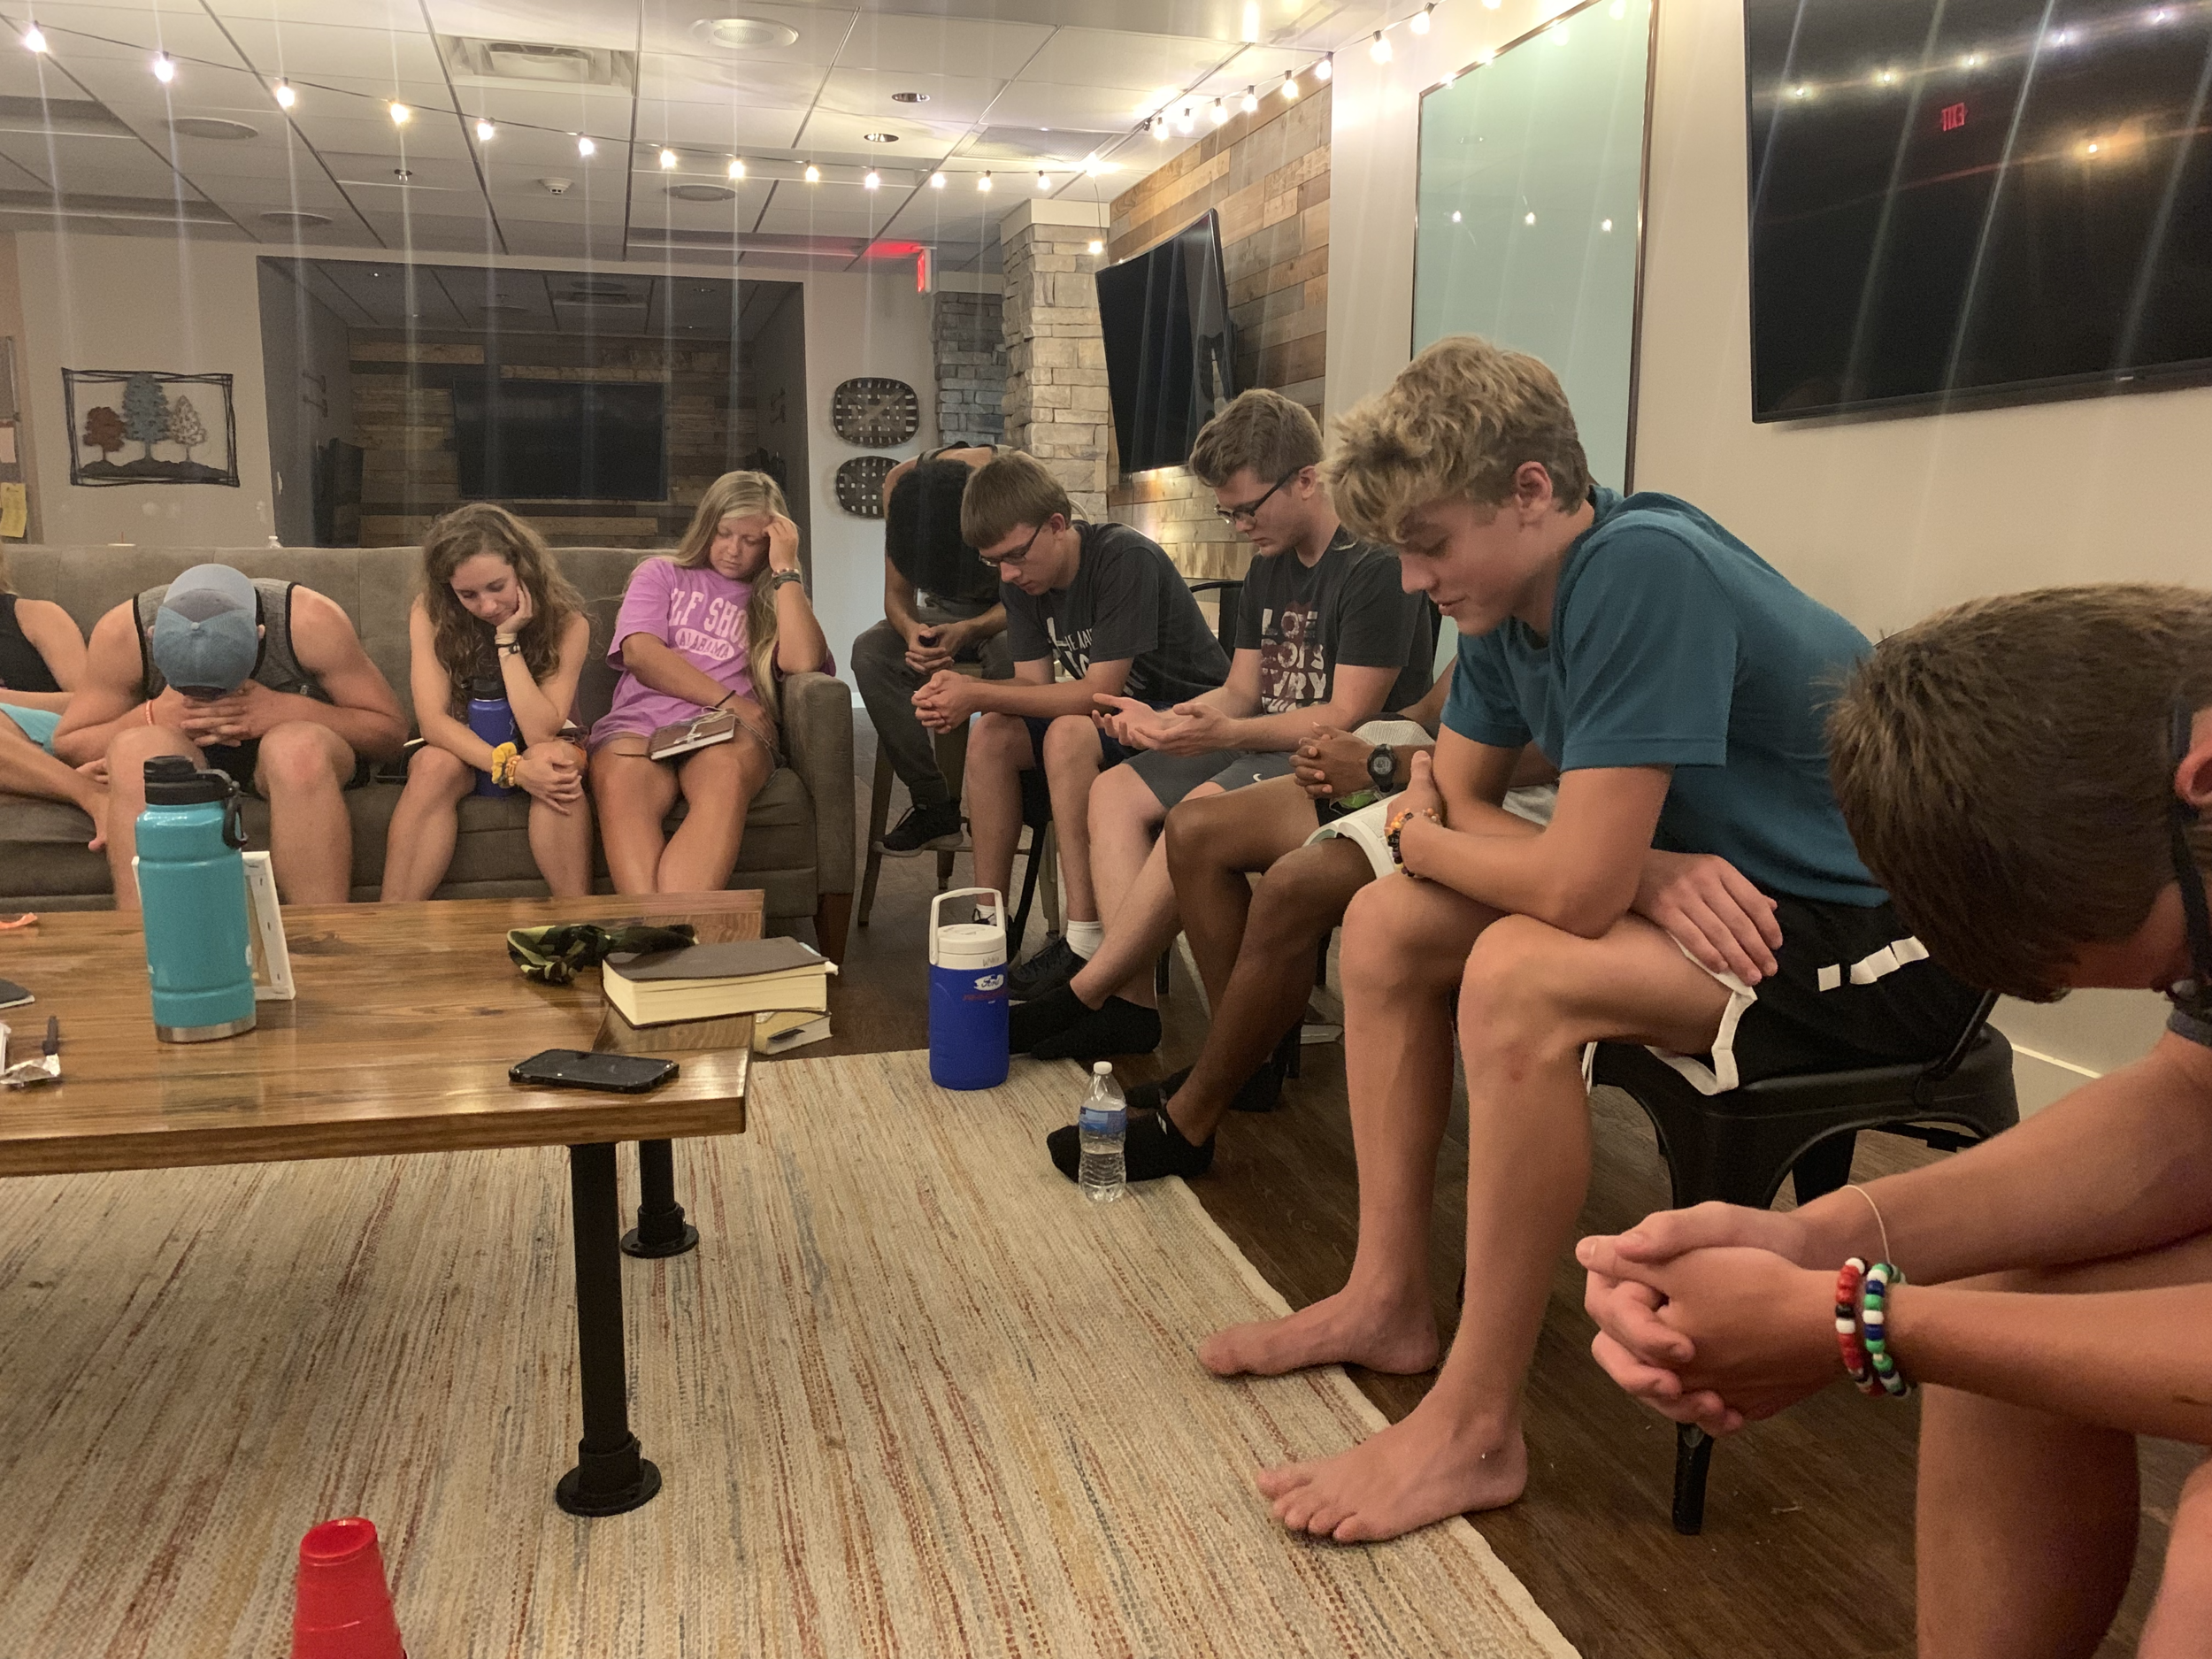 HIGH SCHOOL - Our 9th-12th grade ministry is all about connecting high school students to each other and to God through quality events and environments. The High School Ministry meets at 10:45 am on Sunday mornings in our high school environment called The Loft.